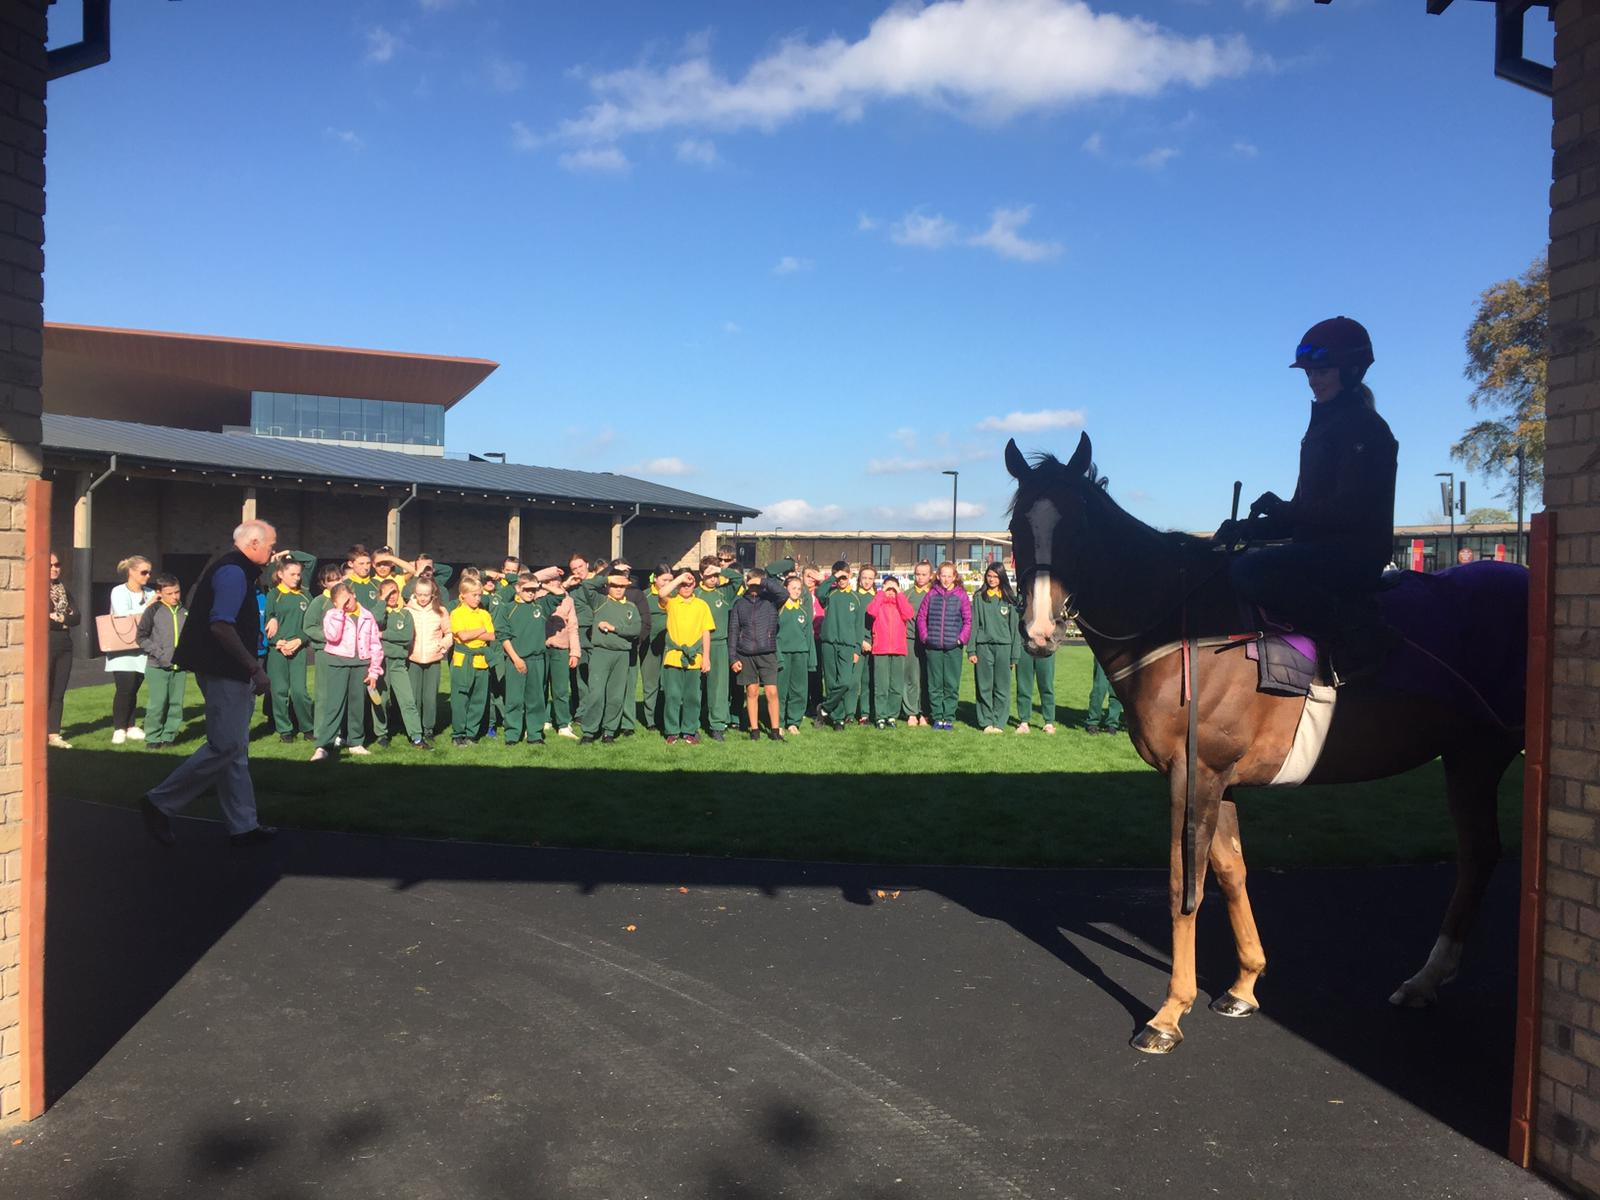 The Curragh host 'Go Racing Kids Club' Education Day